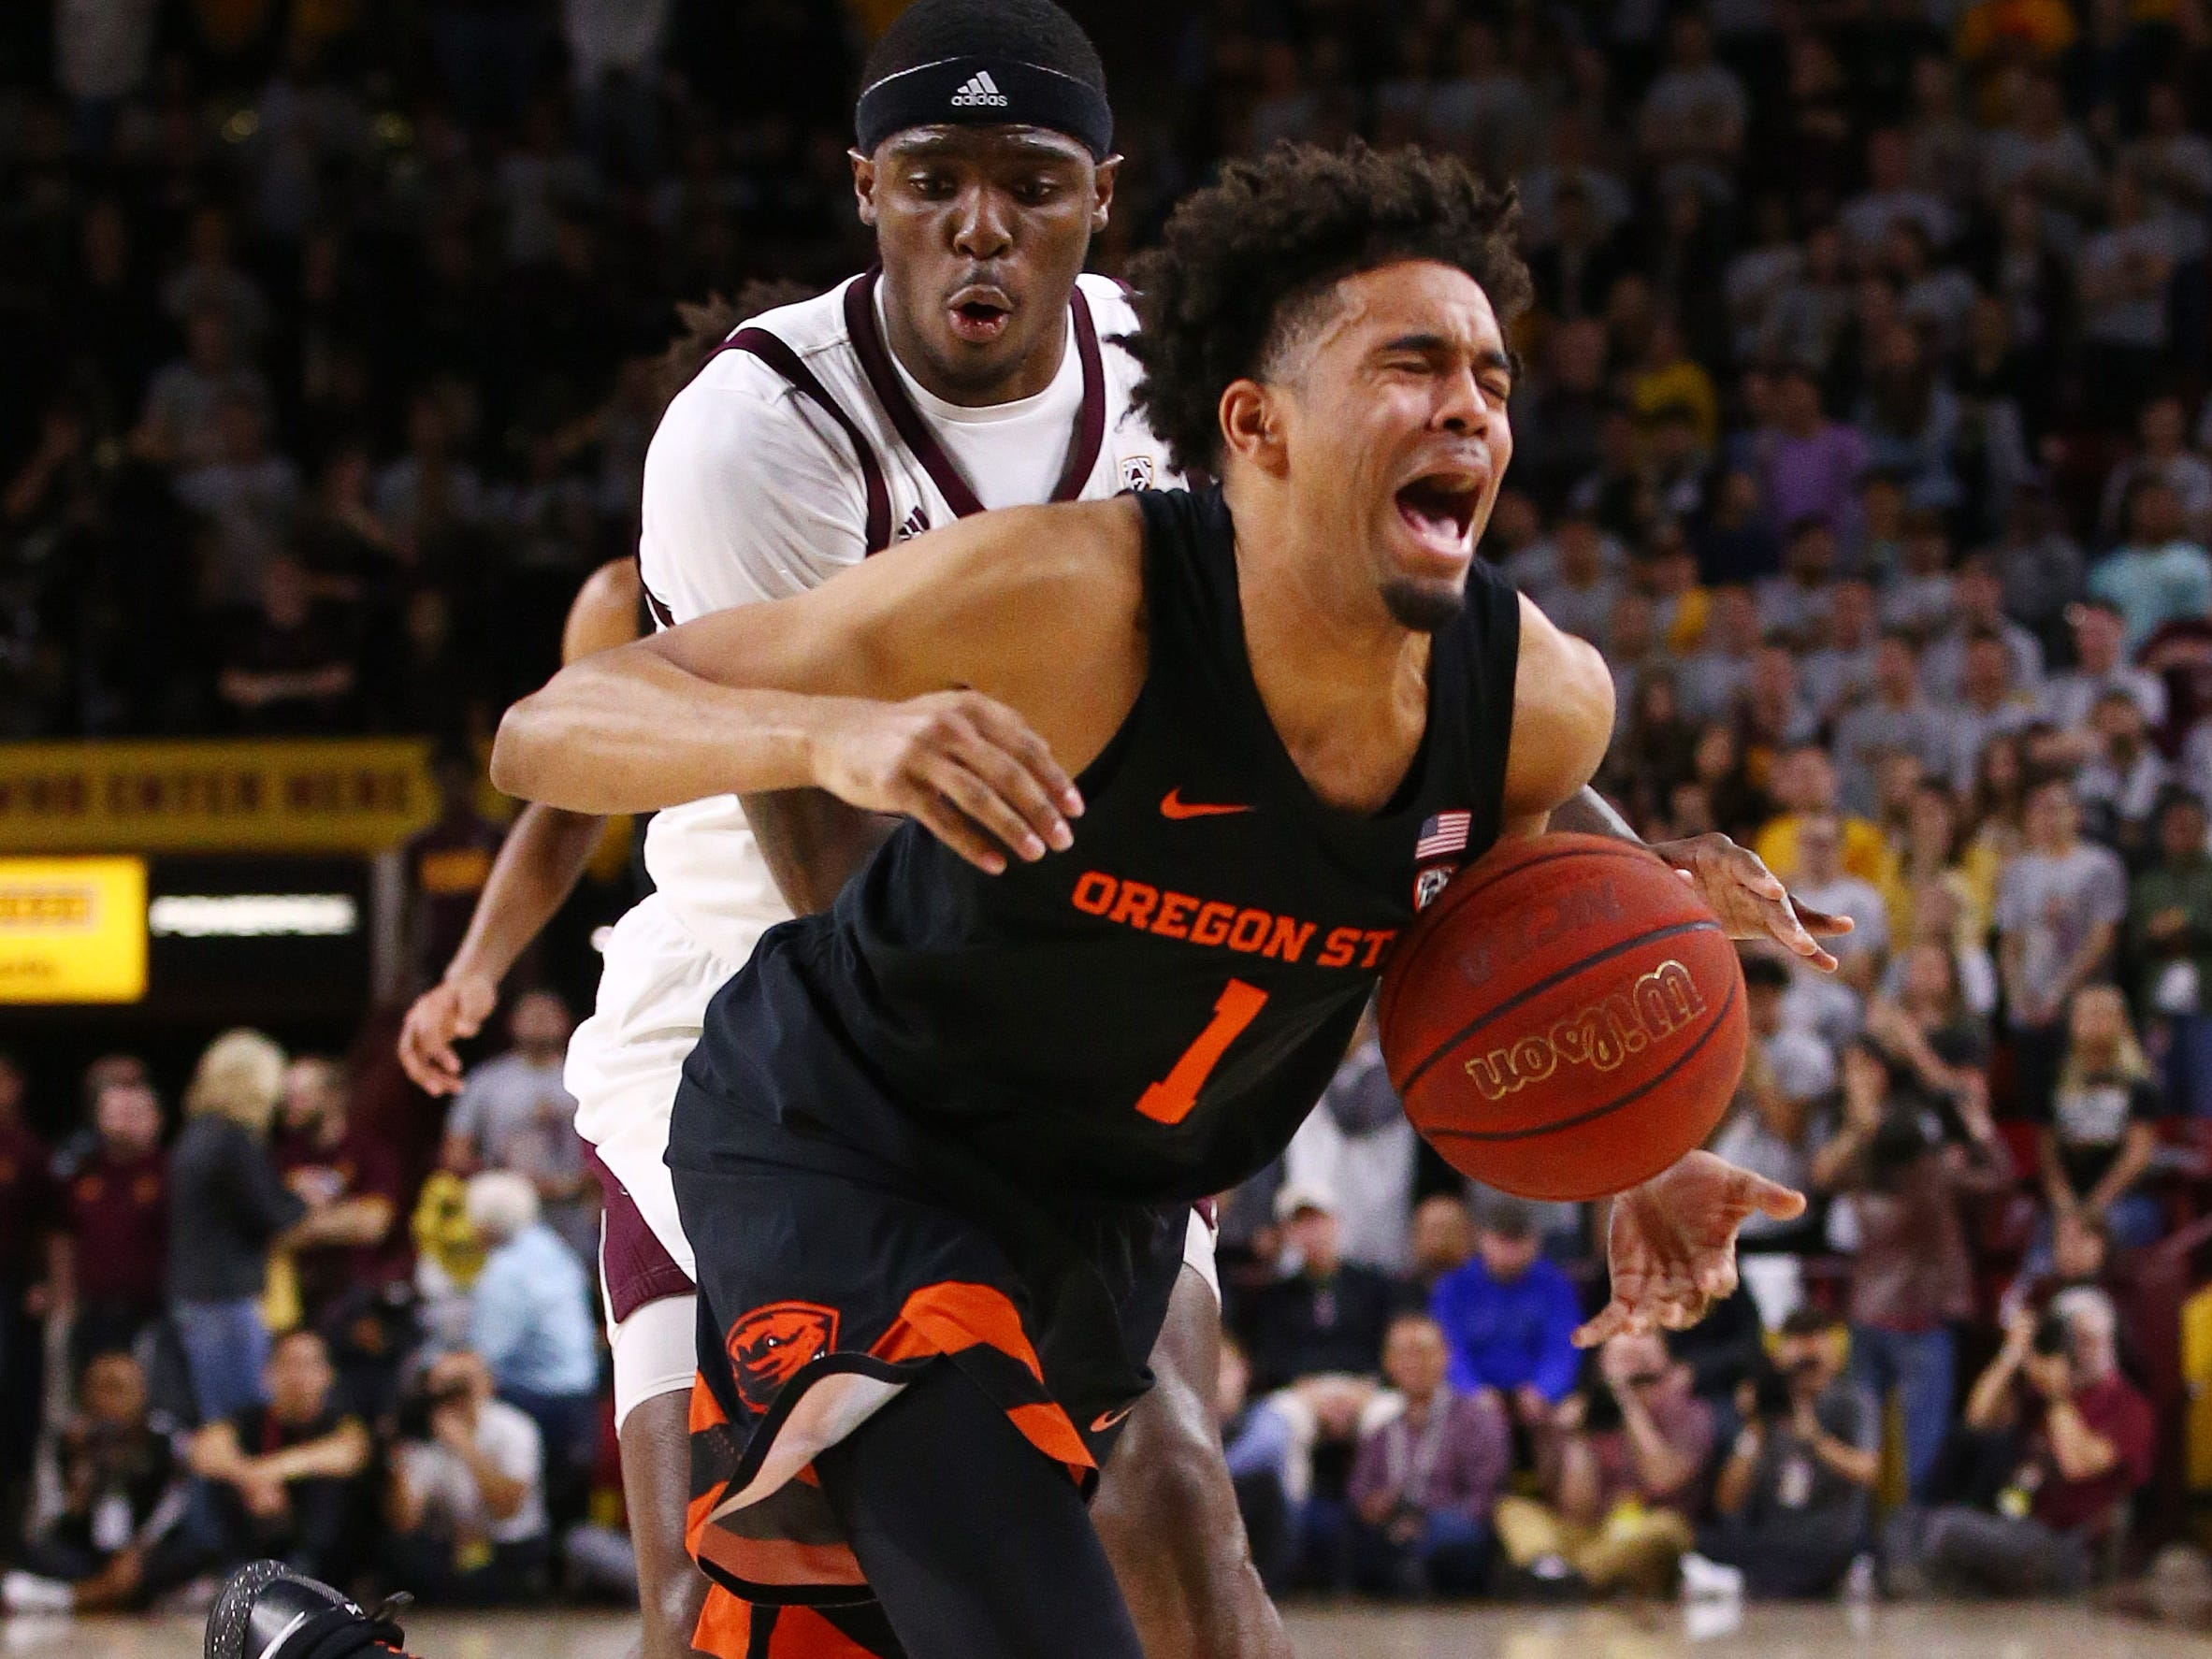 Oregon State Beavers guard Stephen Thompson Jr. is guarded by Arizona State Sun Devils' Zylan Cheatham in the first half on Jan. 17 at Wells Fargo Arena in Tempe.